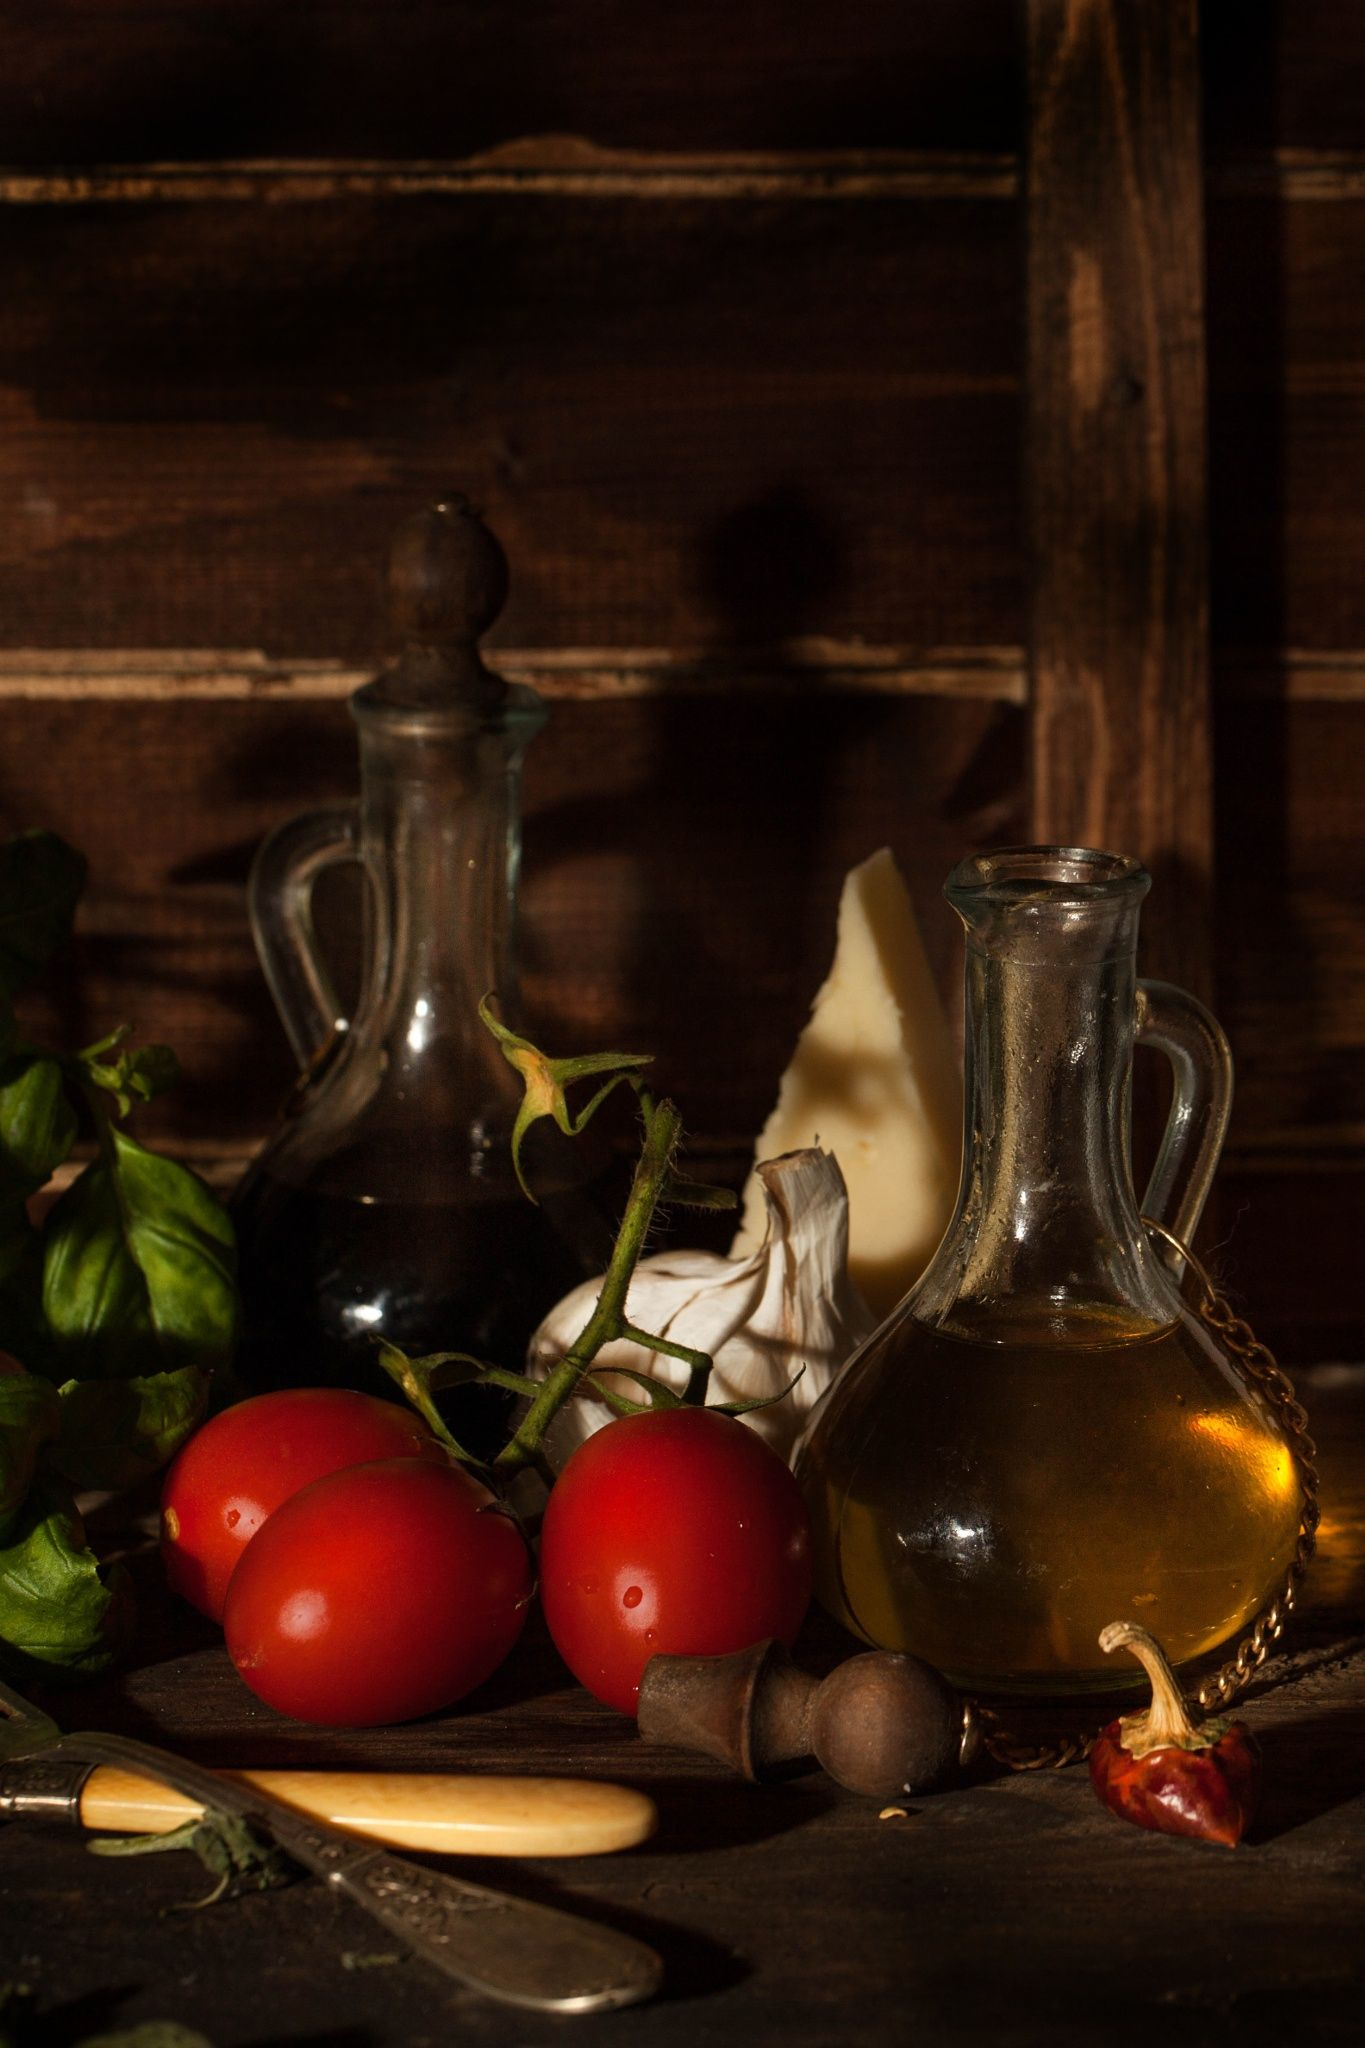 Rustic - Still life with olive oil, tomatoes and garlic ...